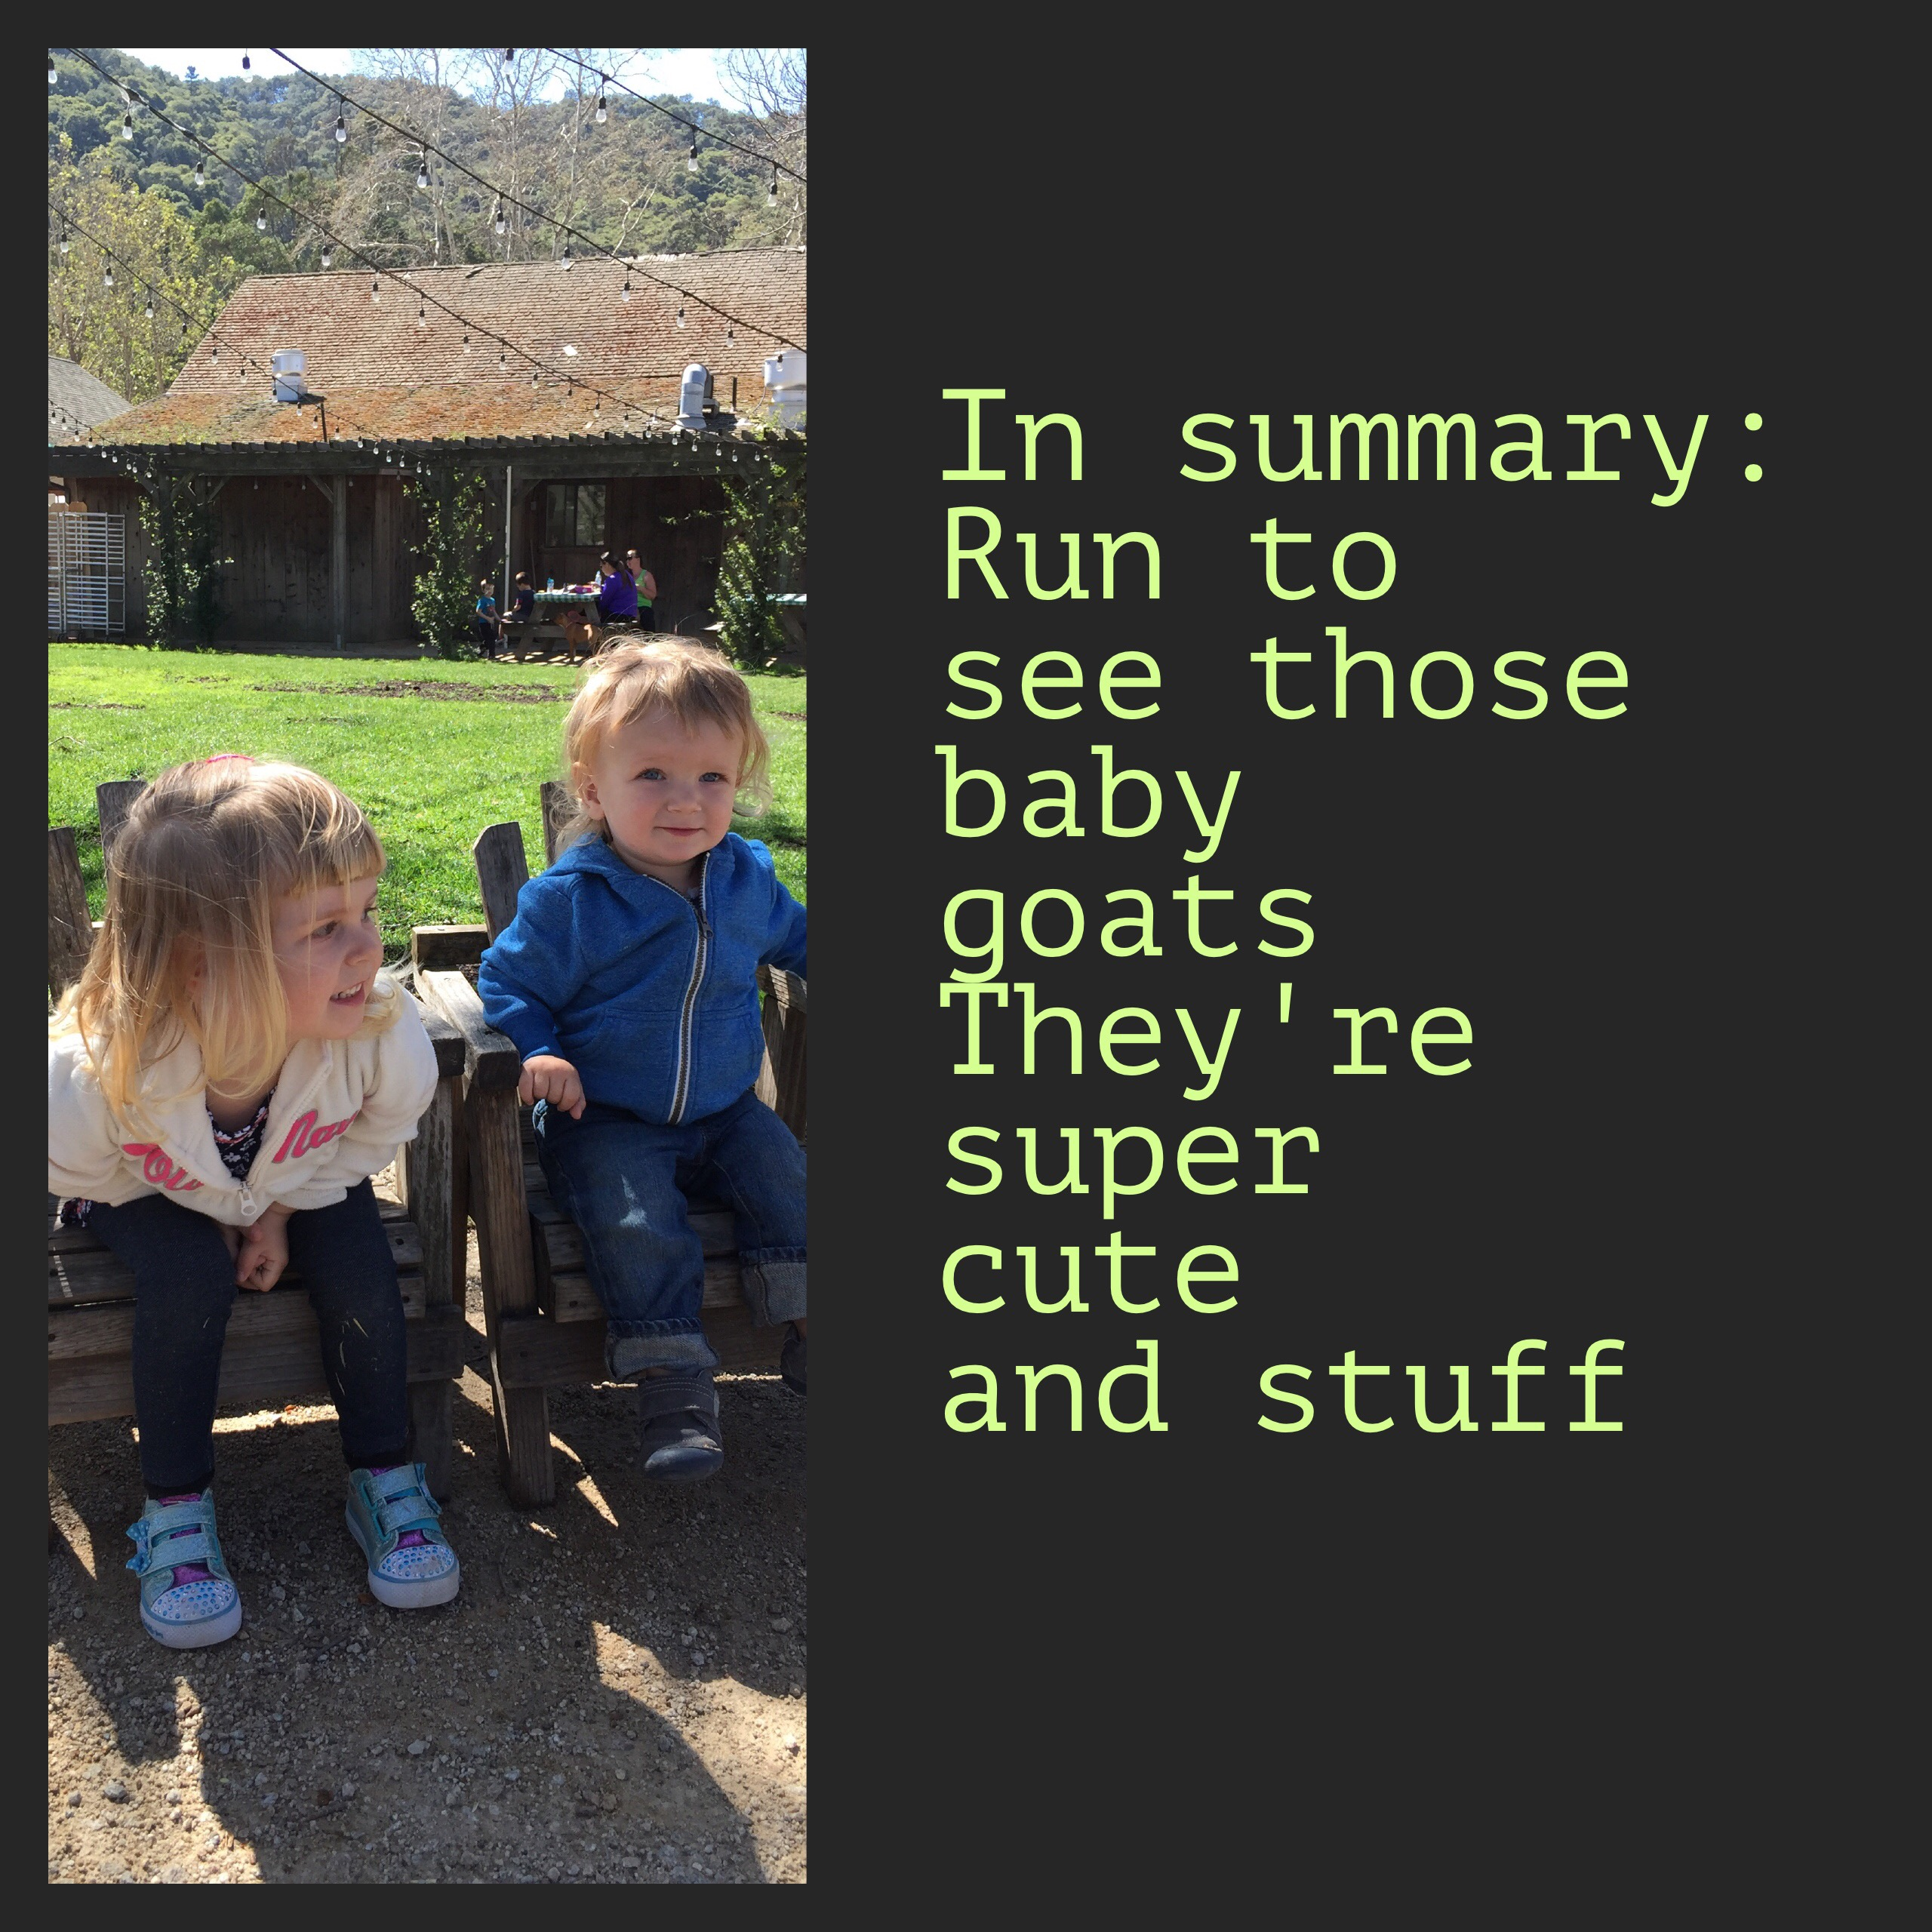 Summary slide of why you should take children to see the baby goats at Avila Valley Barn in San Luis Obispo.